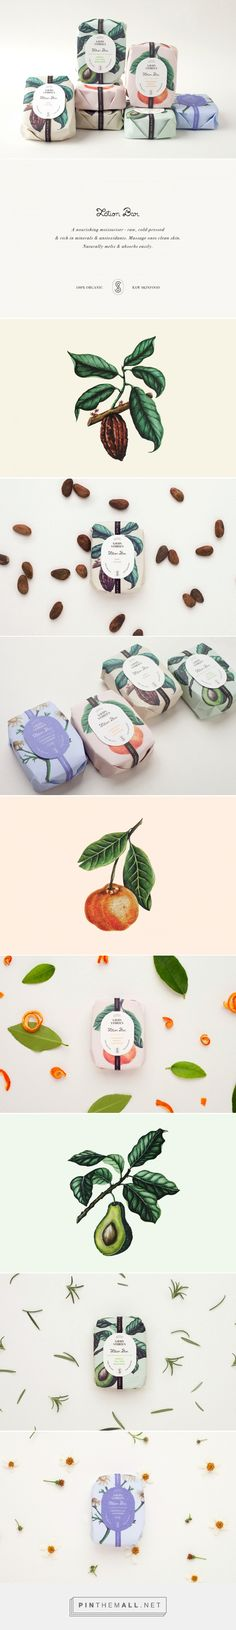 Art direction, illustration and packaging for Savon Stories Lotion Bars on Behance by Menta Guadalajara, Mexico curated by Packaging Diva PD. New luxury line made with raw ingredients and essential oils to nourish the skin deeply.